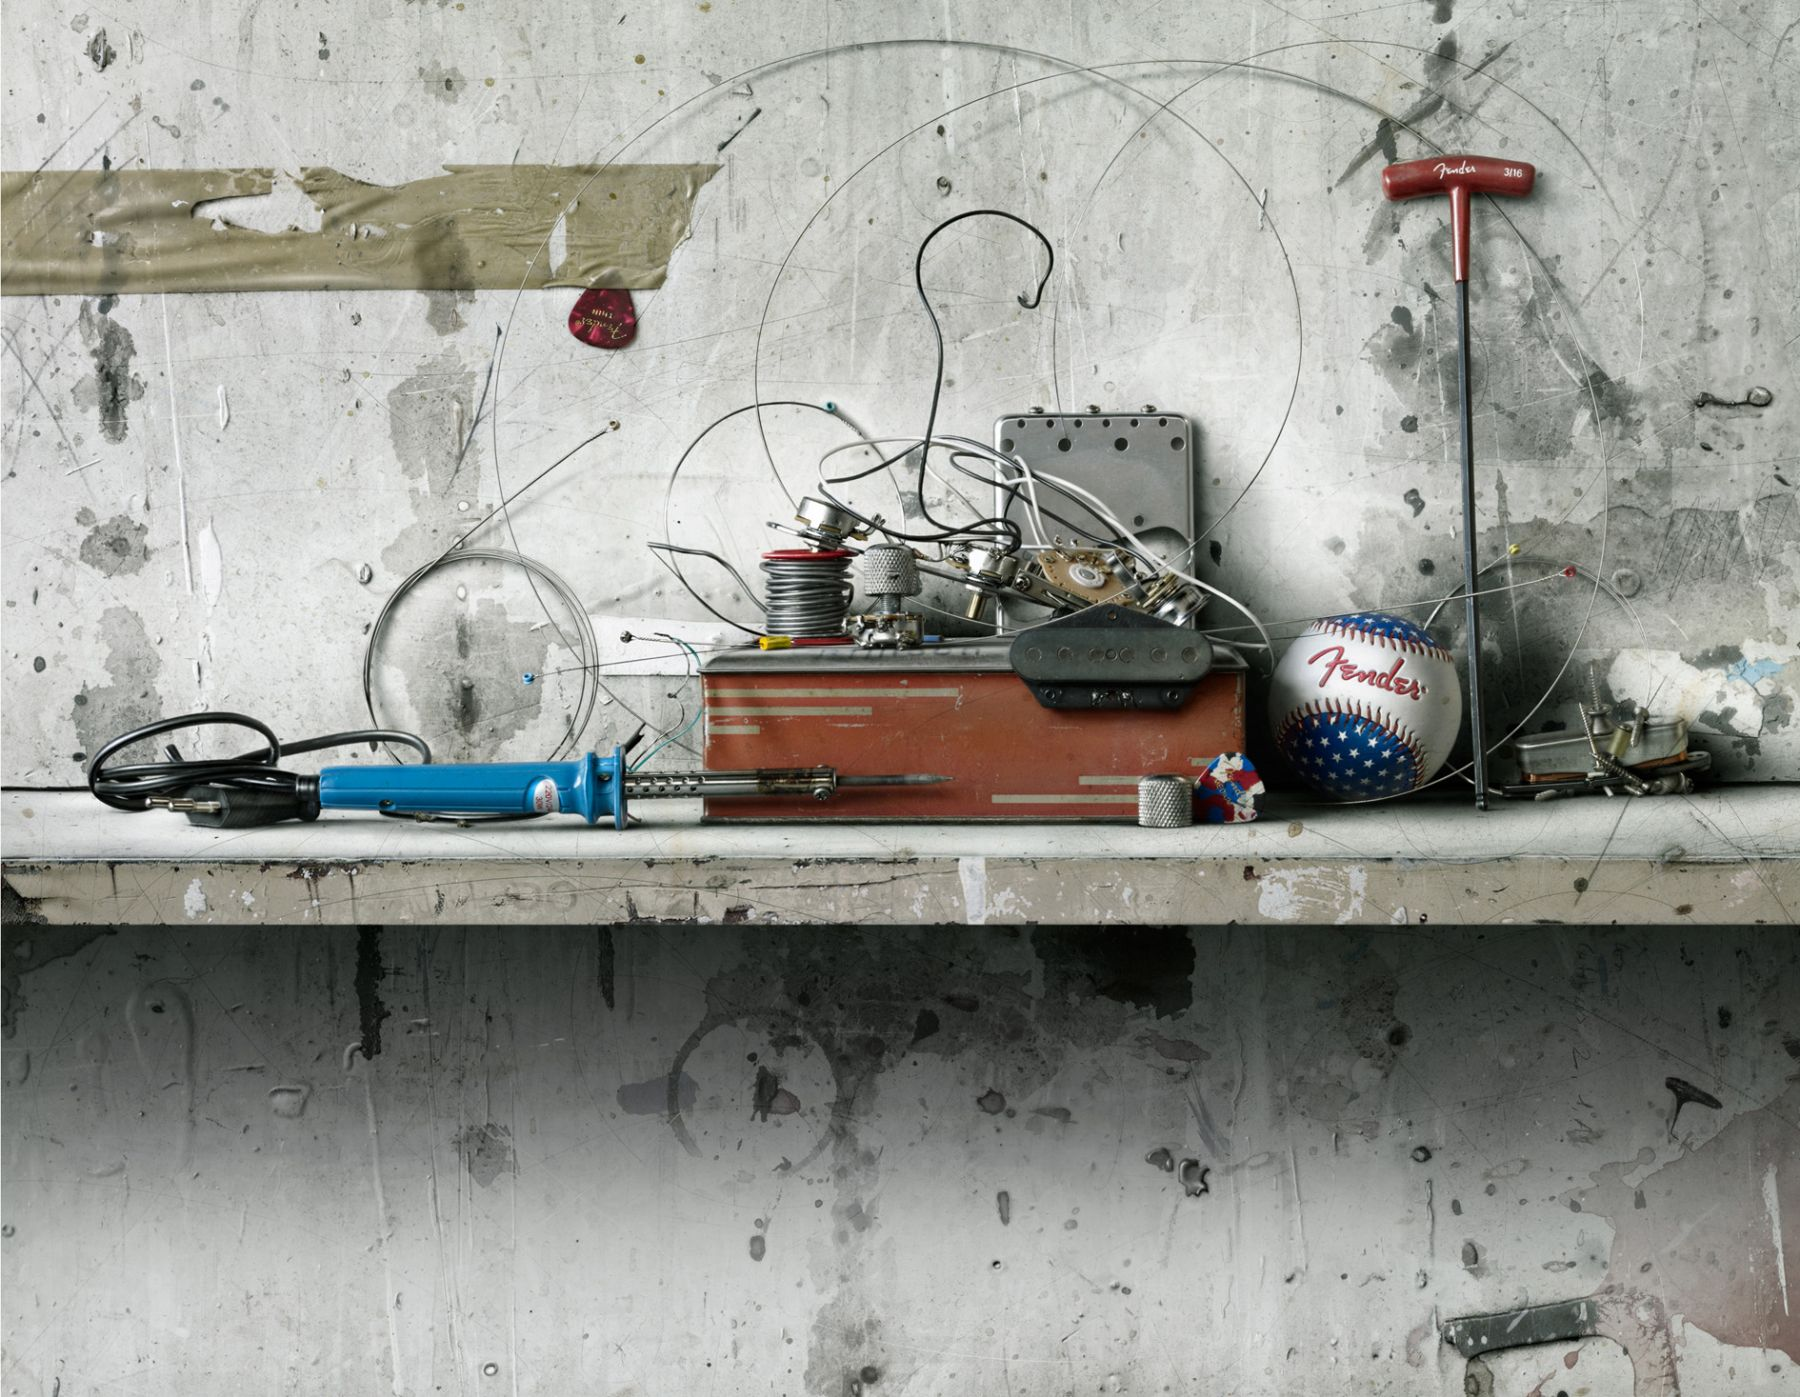 cesar galicia, Still Life with Guitar, 2012, mixed media on board, 27 1/2 x 21 1/4 inches